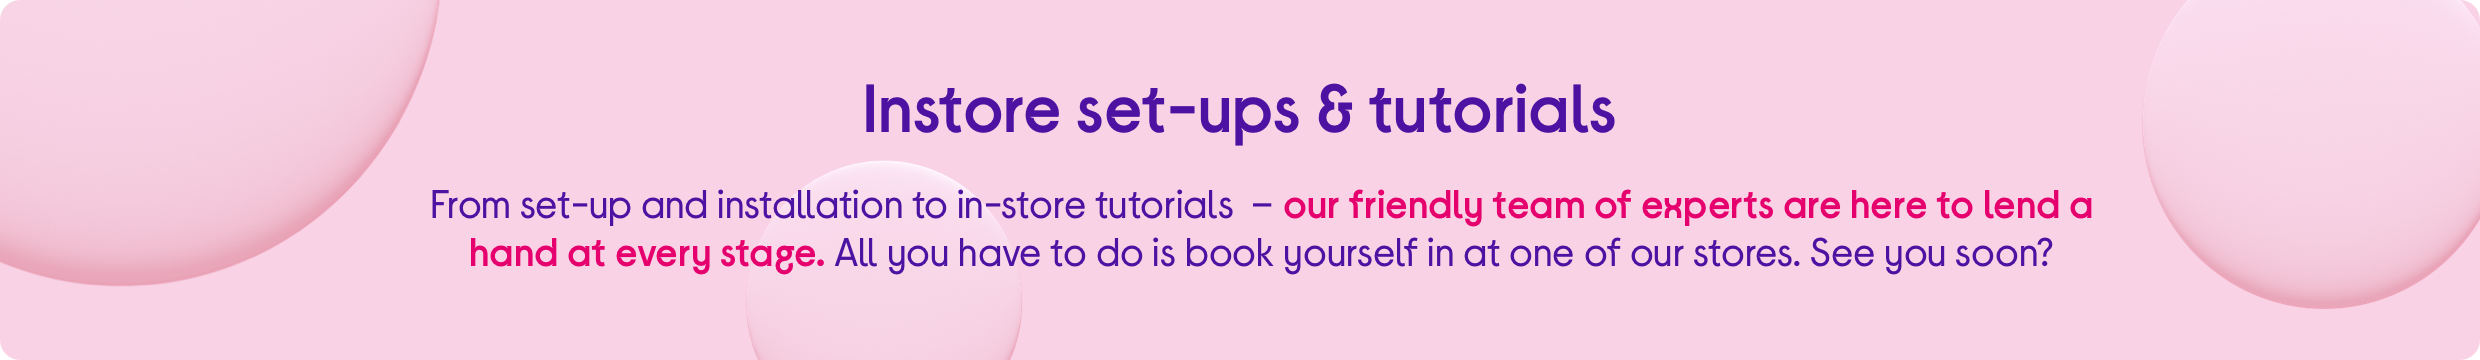 From set-up and installation to in-store tutorials  – our friendly team of experts are here to lend a hand at every stage. All you have to do is book yourself in at one of our stores. See you soon?